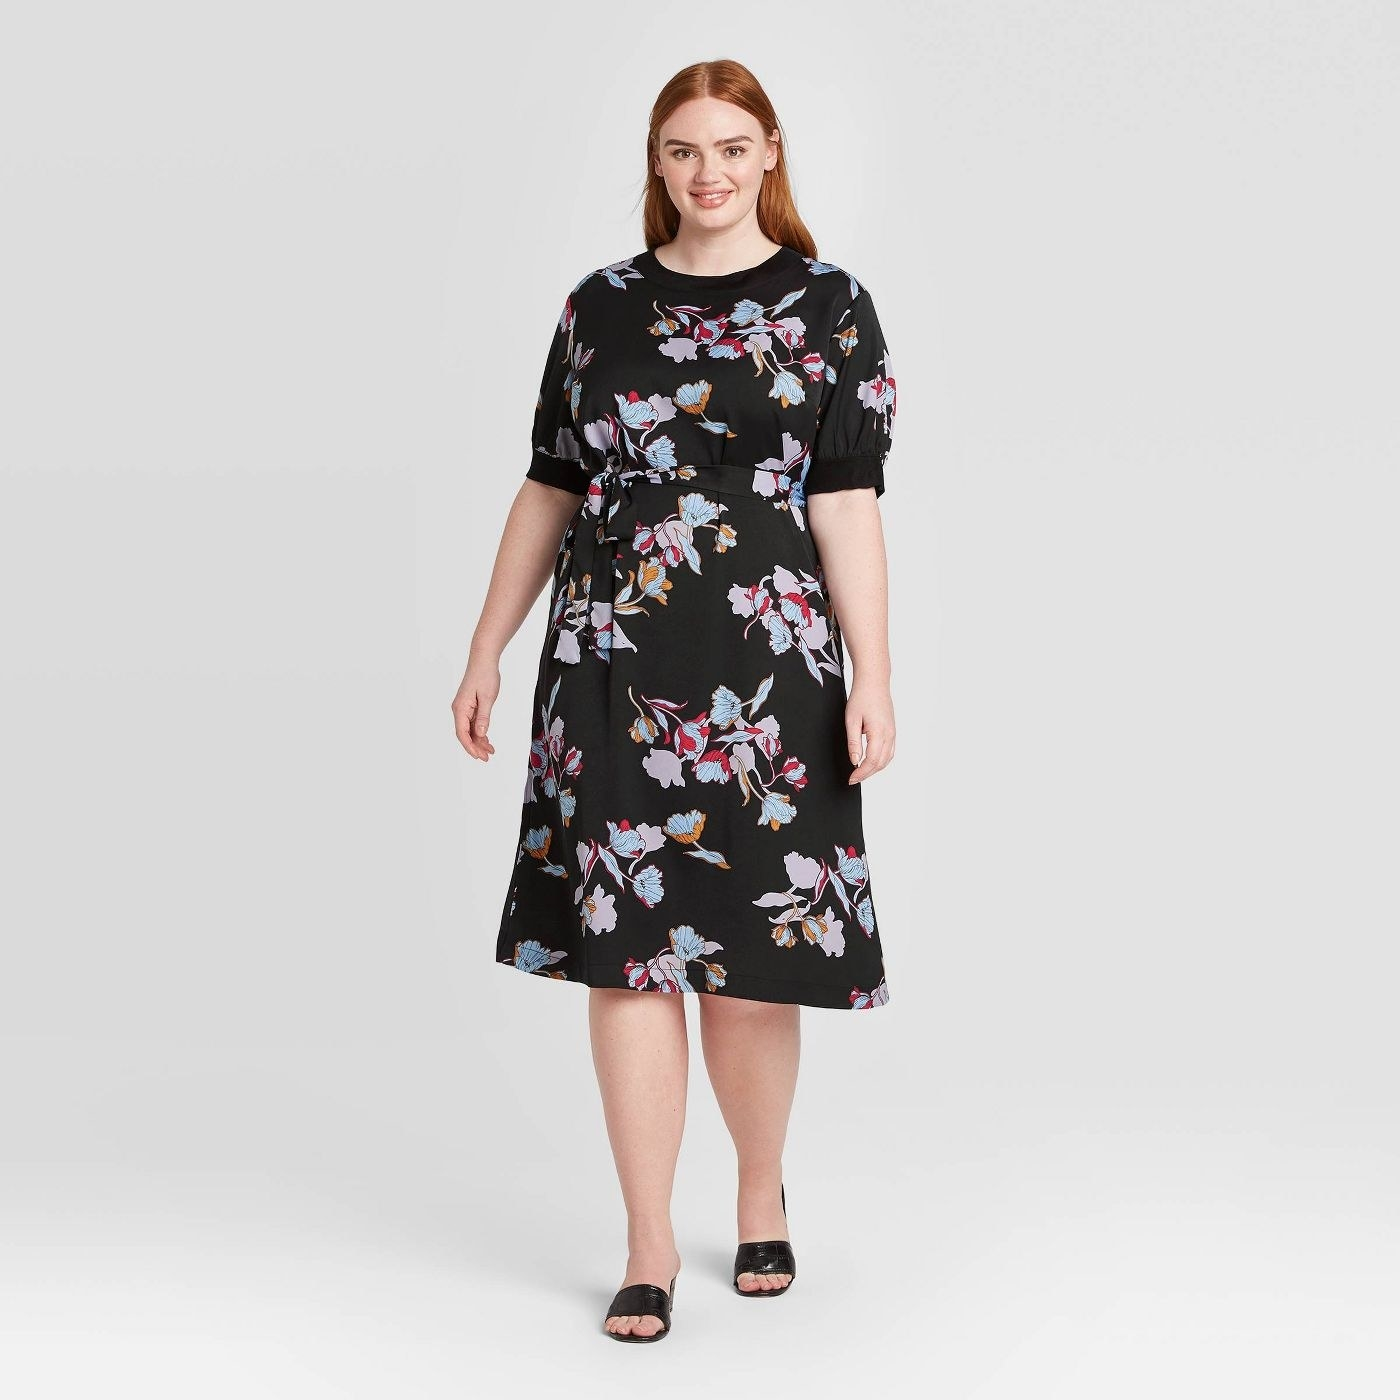 A model in a black short-sleeved dress with purple florals